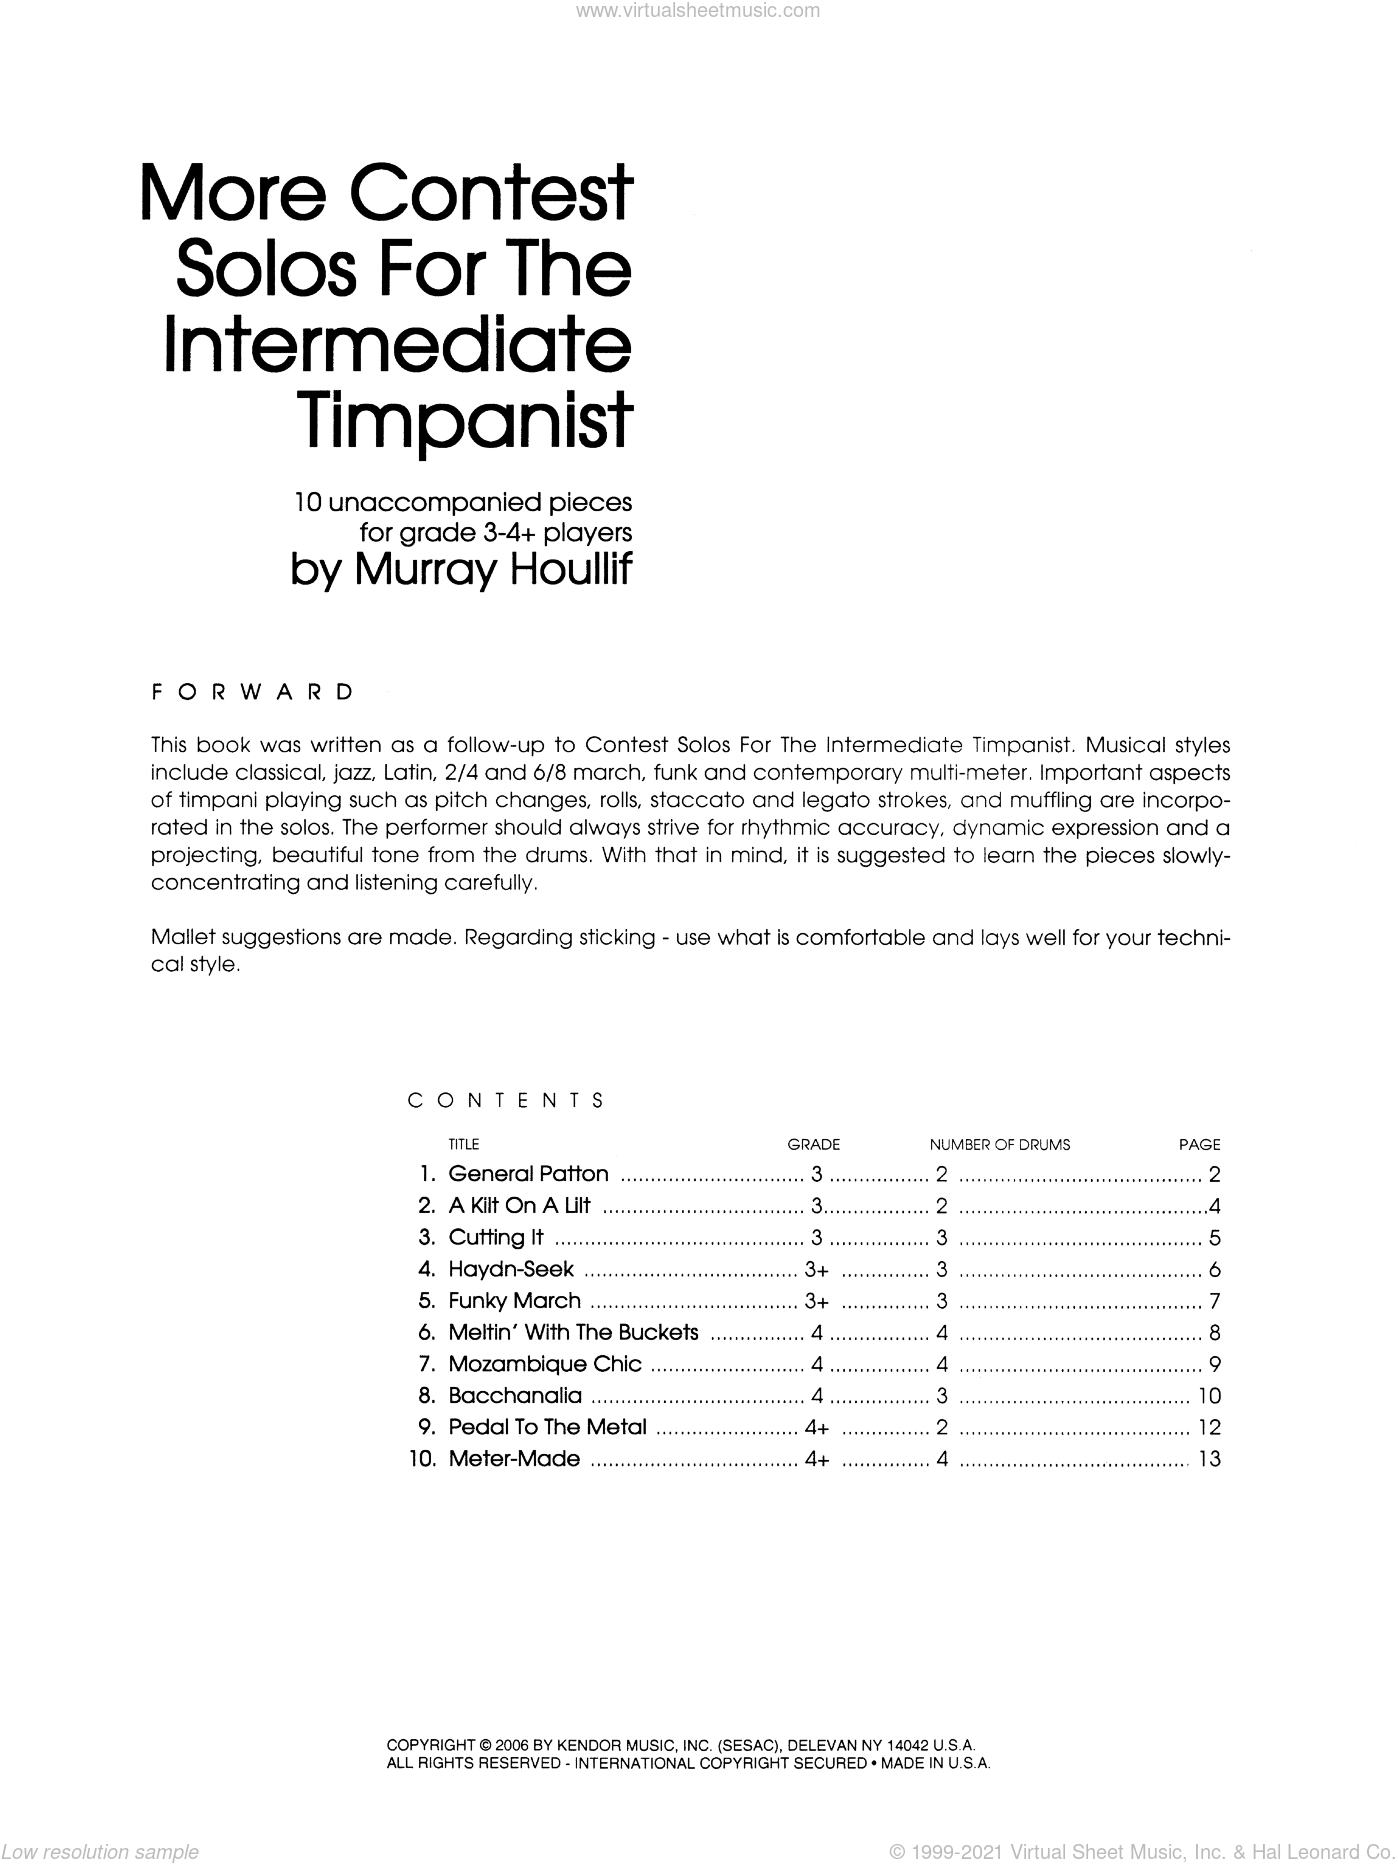 More Contest Solos For The Intermediate Timpanist sheet music for percussions by Houllif, classical score, intermediate skill level